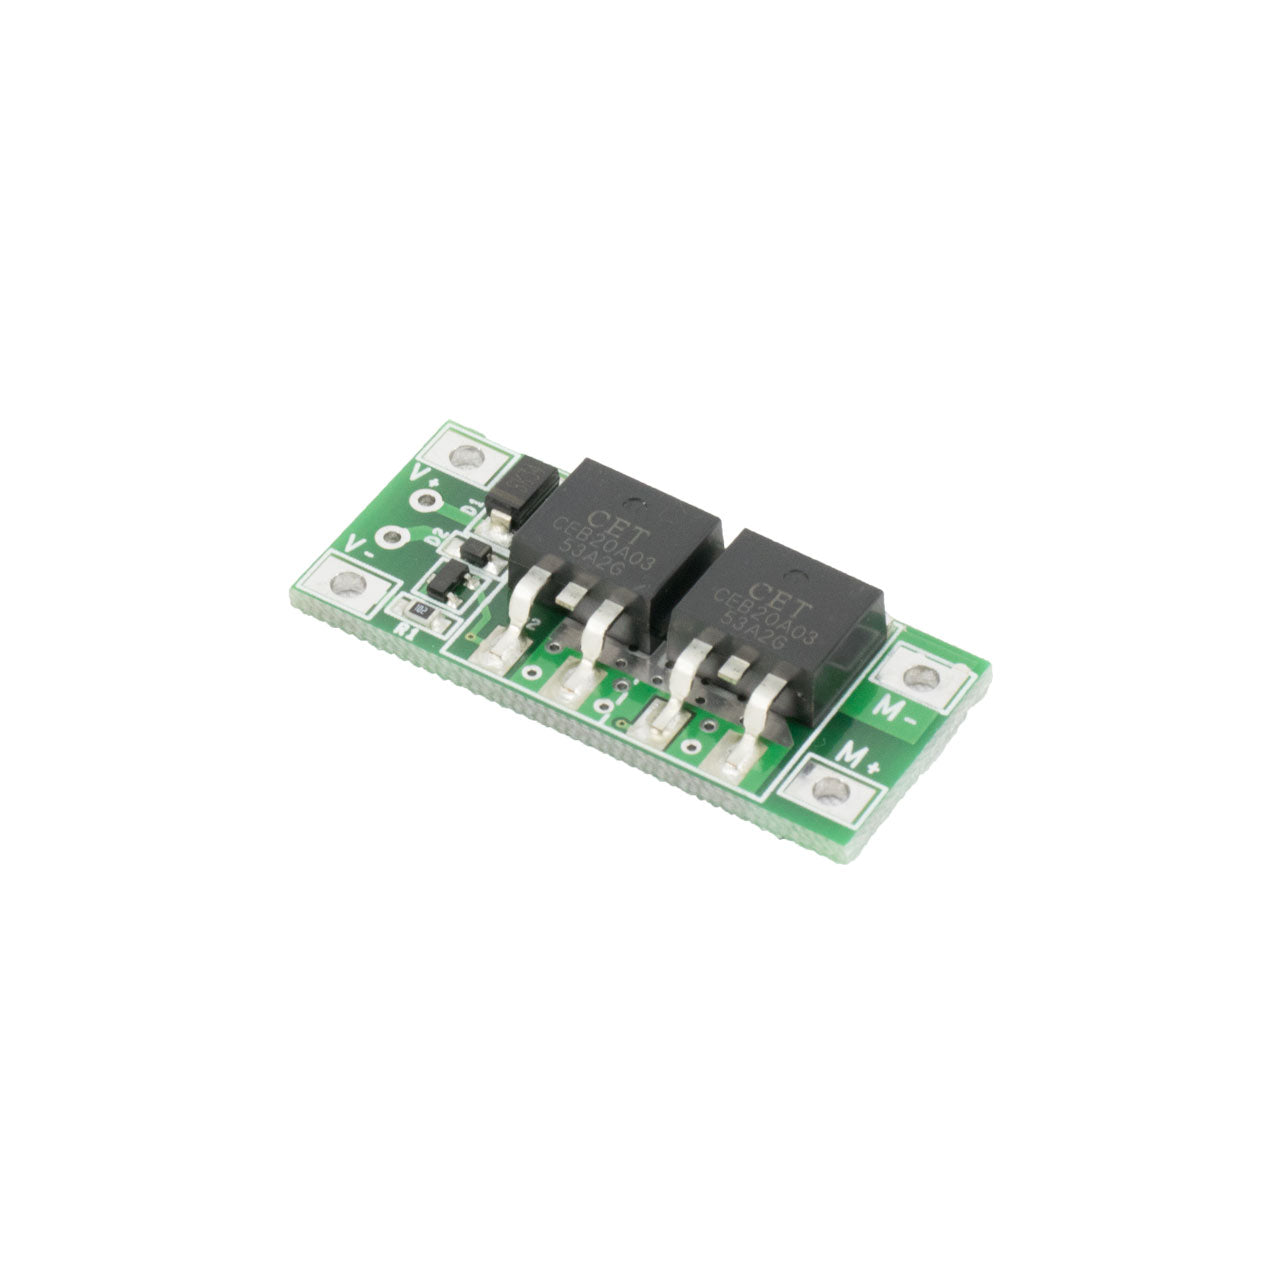 ACETECH Plus Mosfet unit for Airsoft AEG Rifle